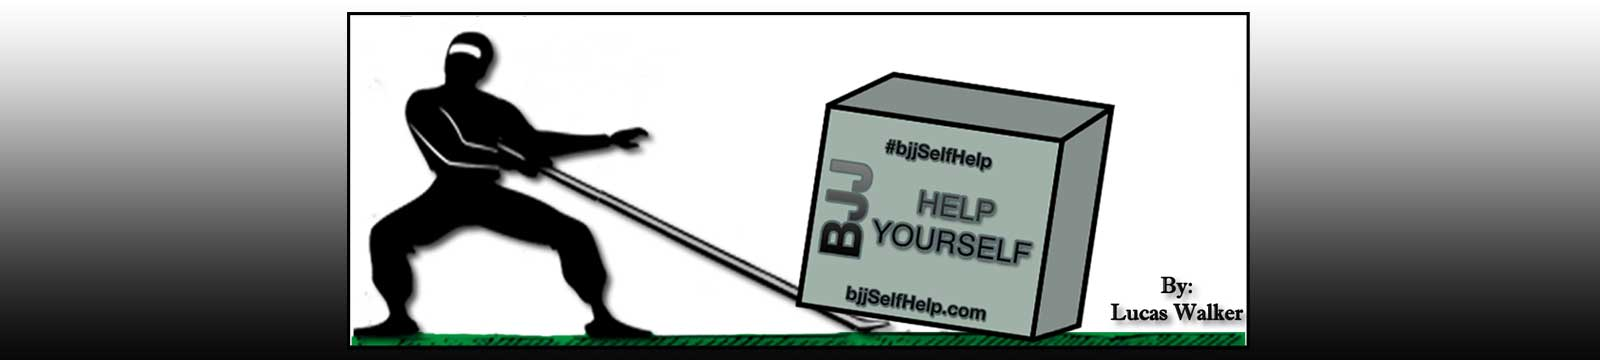 Welcome to #bjjSelfHelp